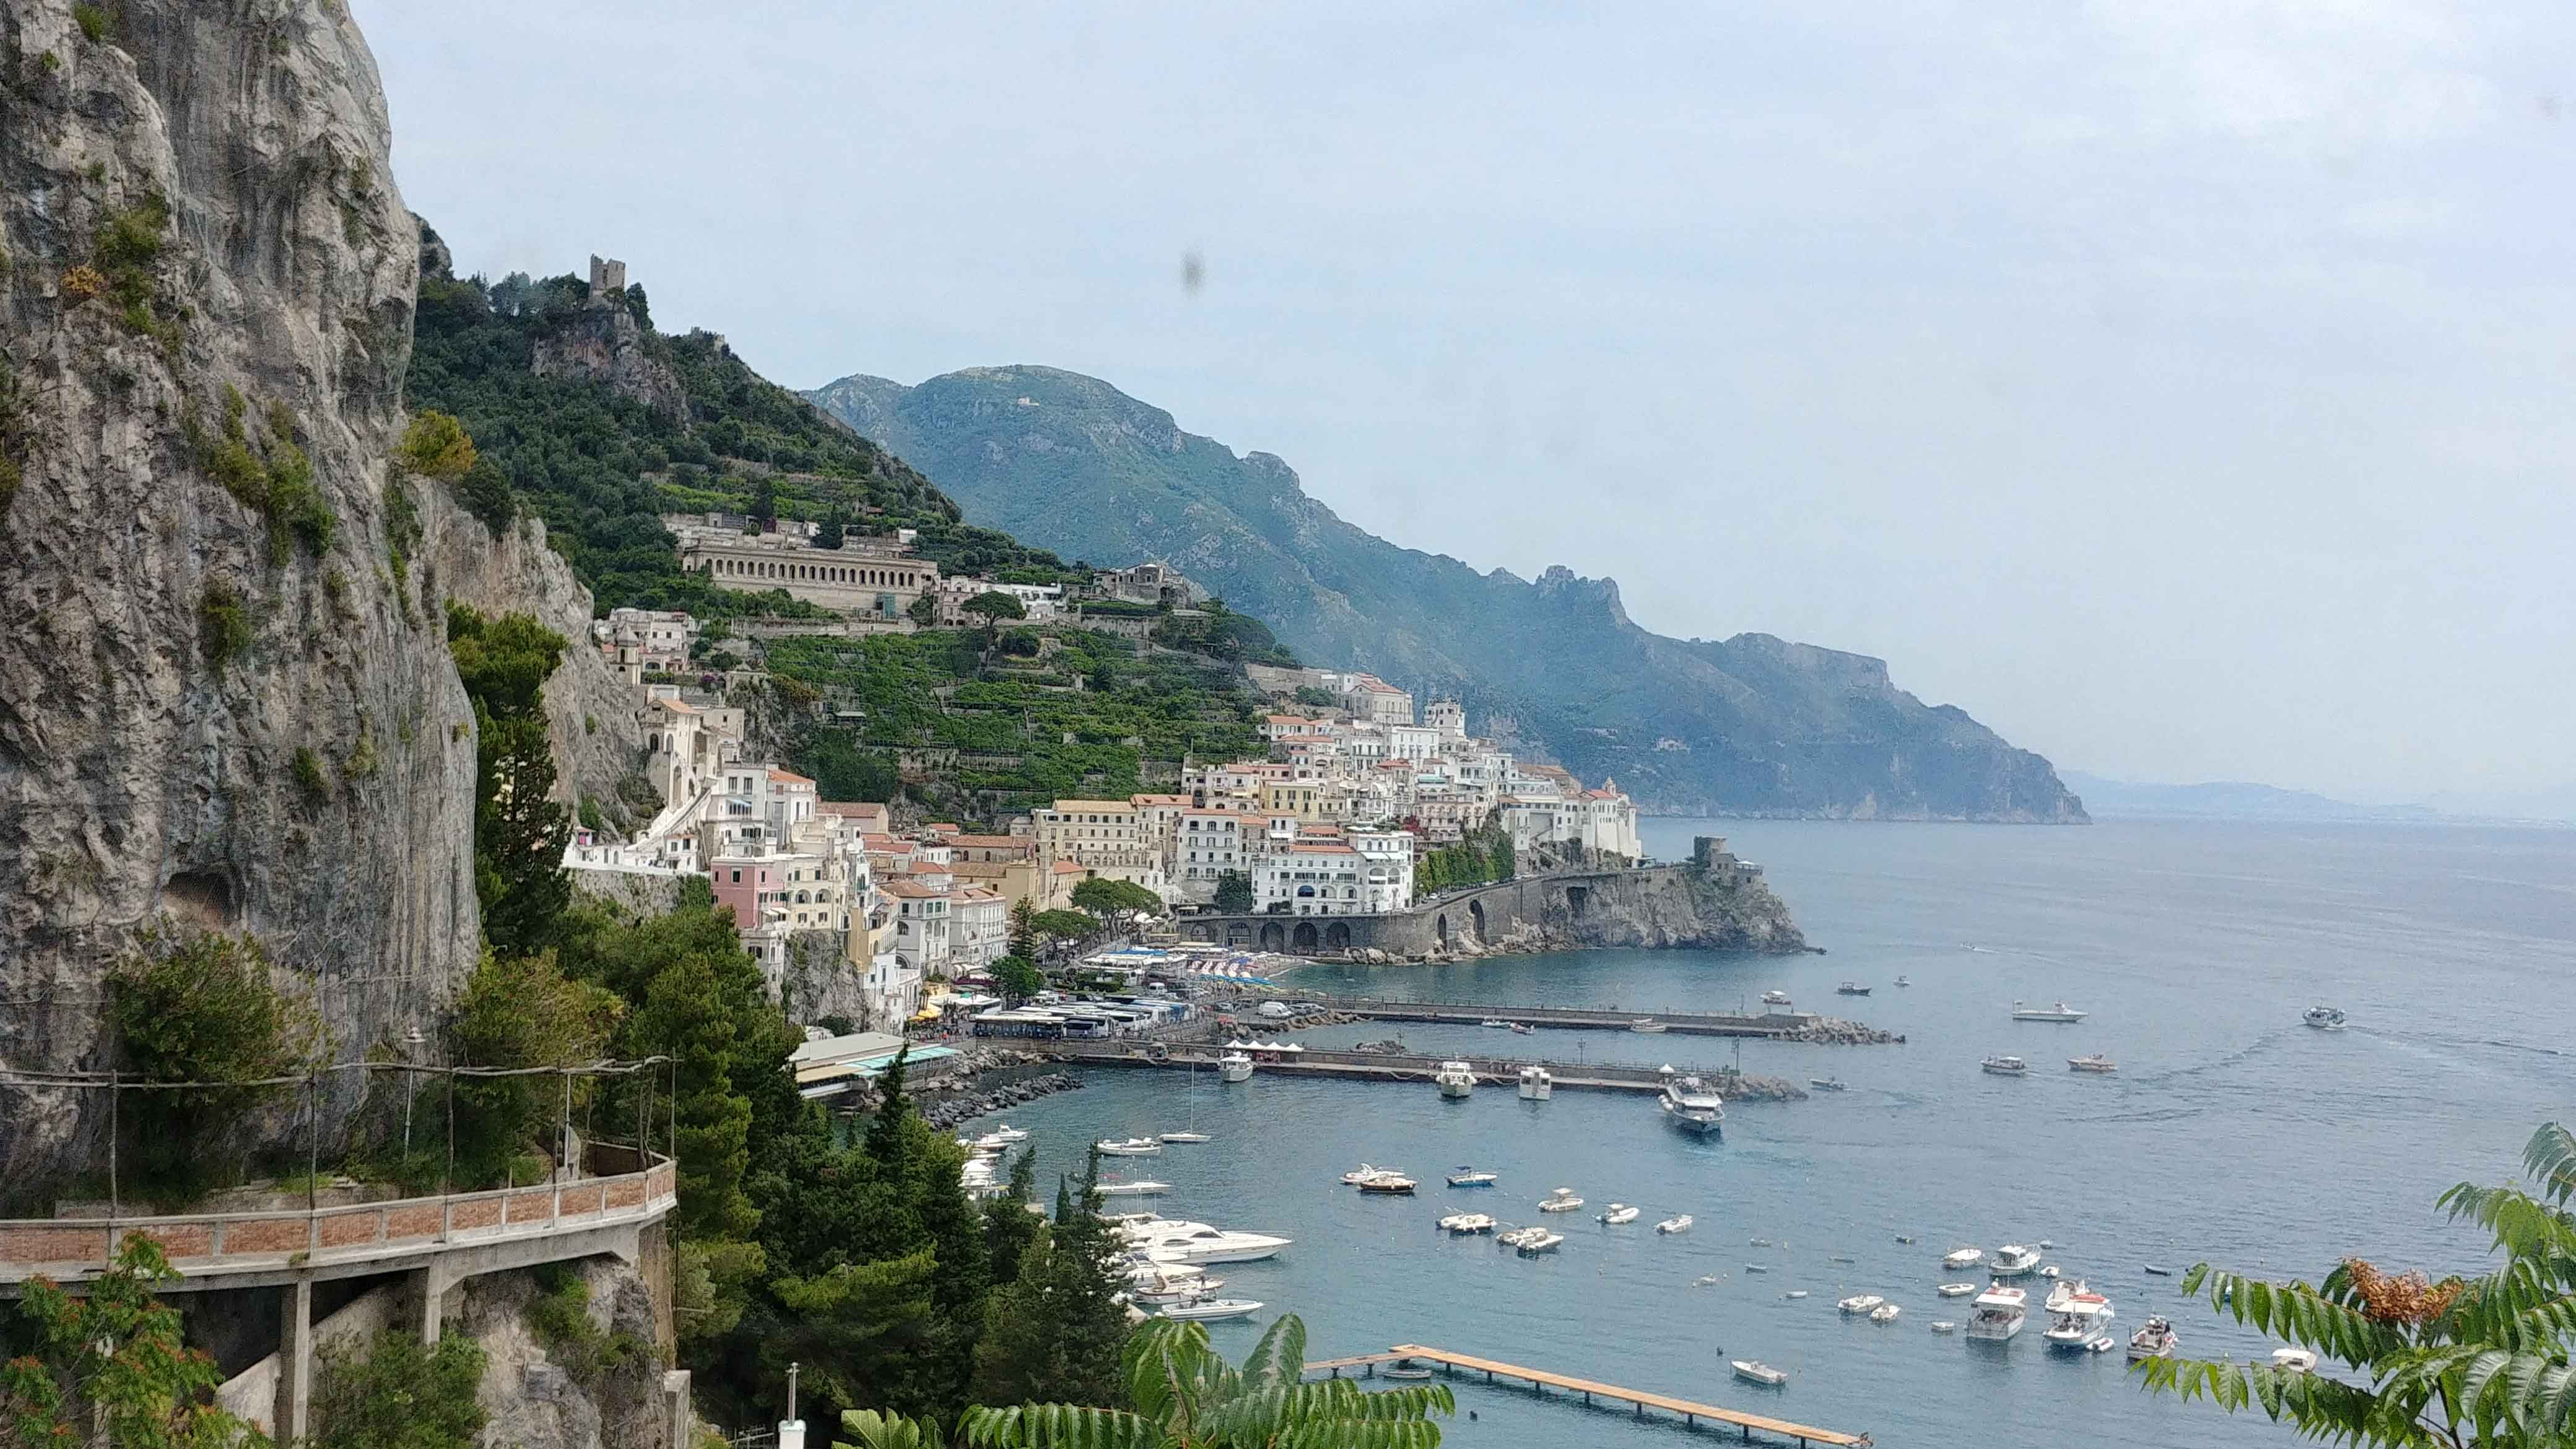 Amalfi Town seen from afar